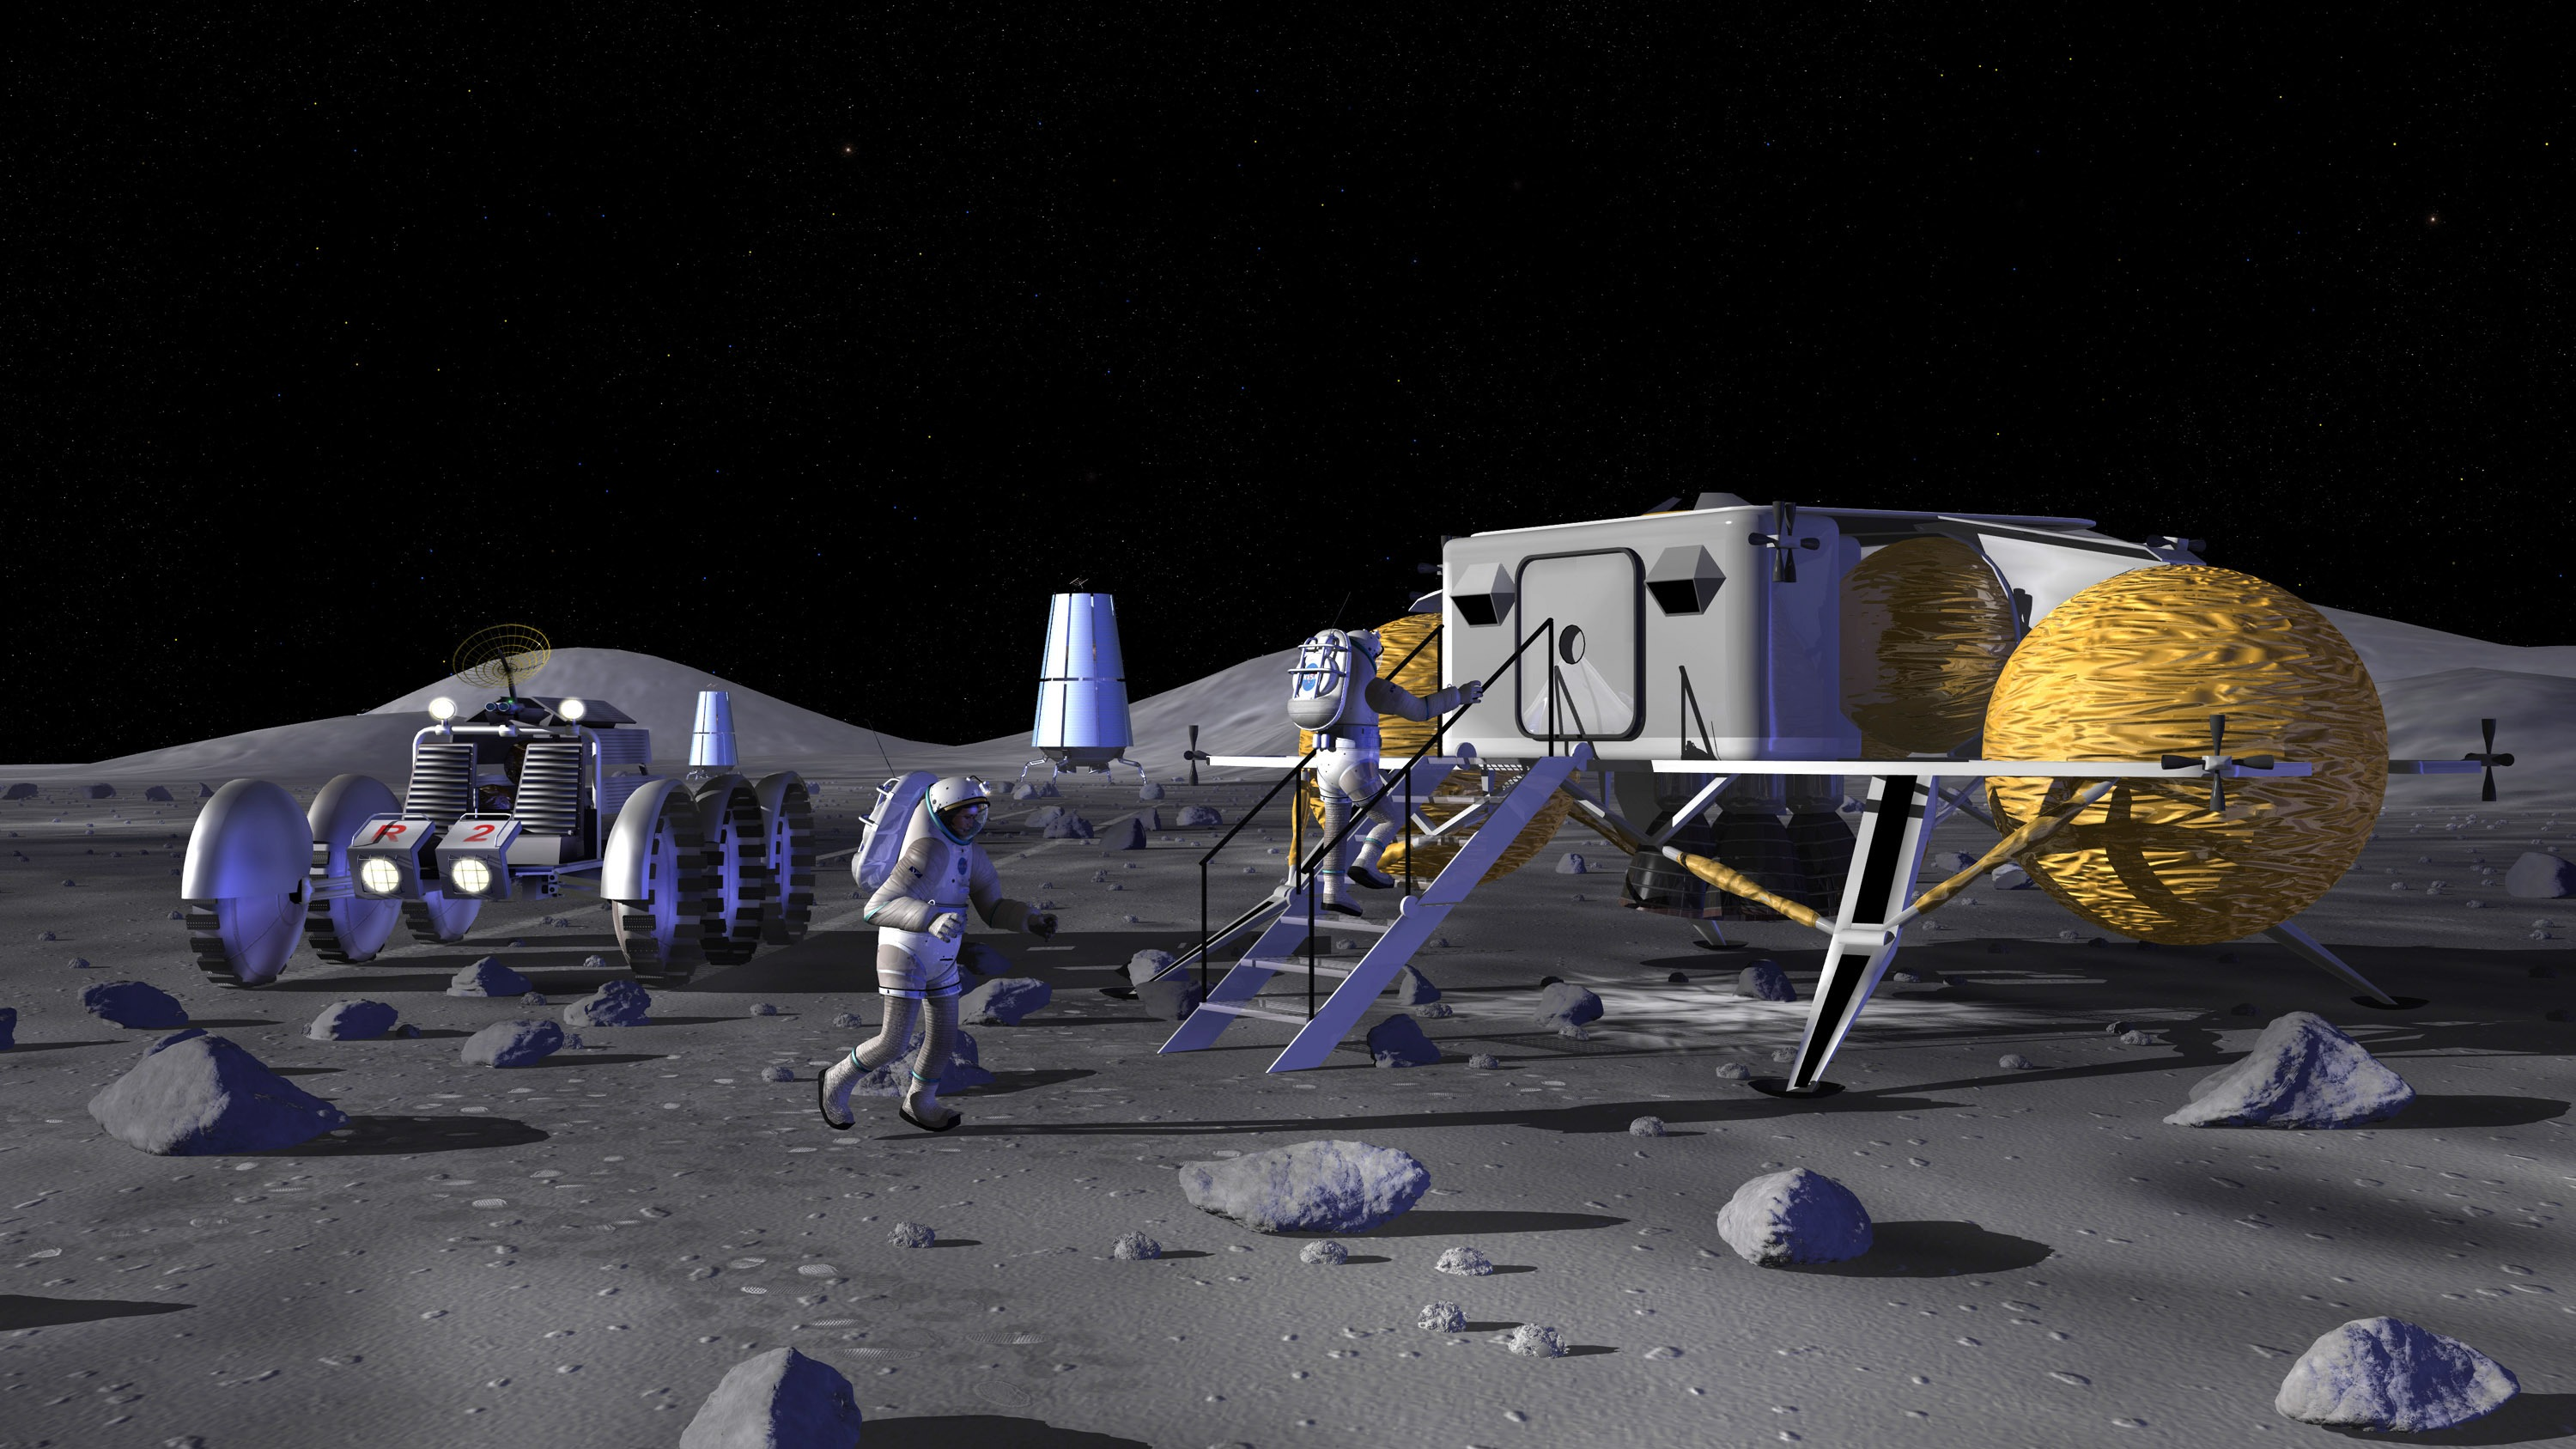 JAXA To Construct Lunar Rover To Use In NASA's Artemis Moon Mission